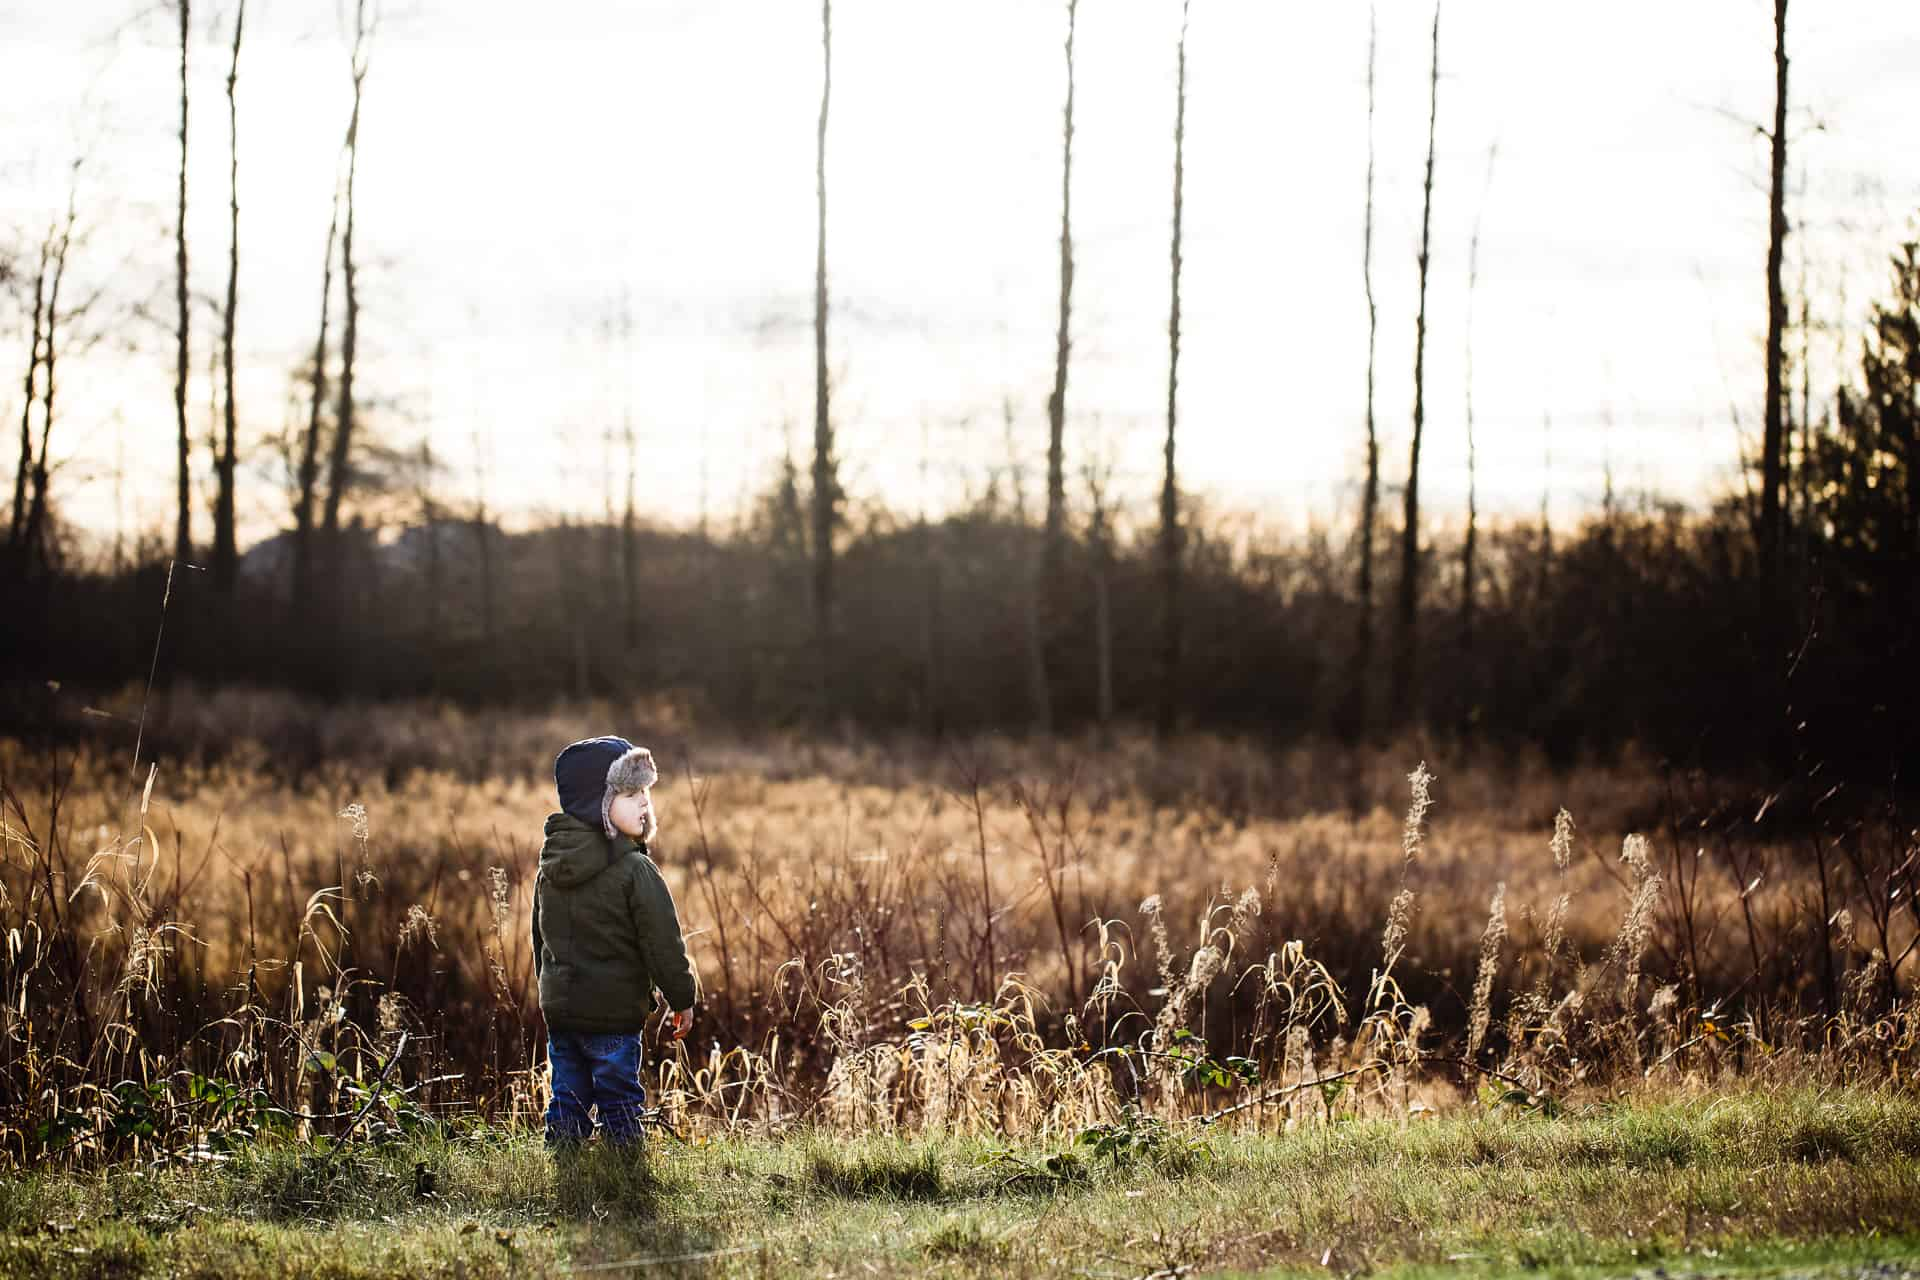 toddler boy in winter gear standing at edge of a field